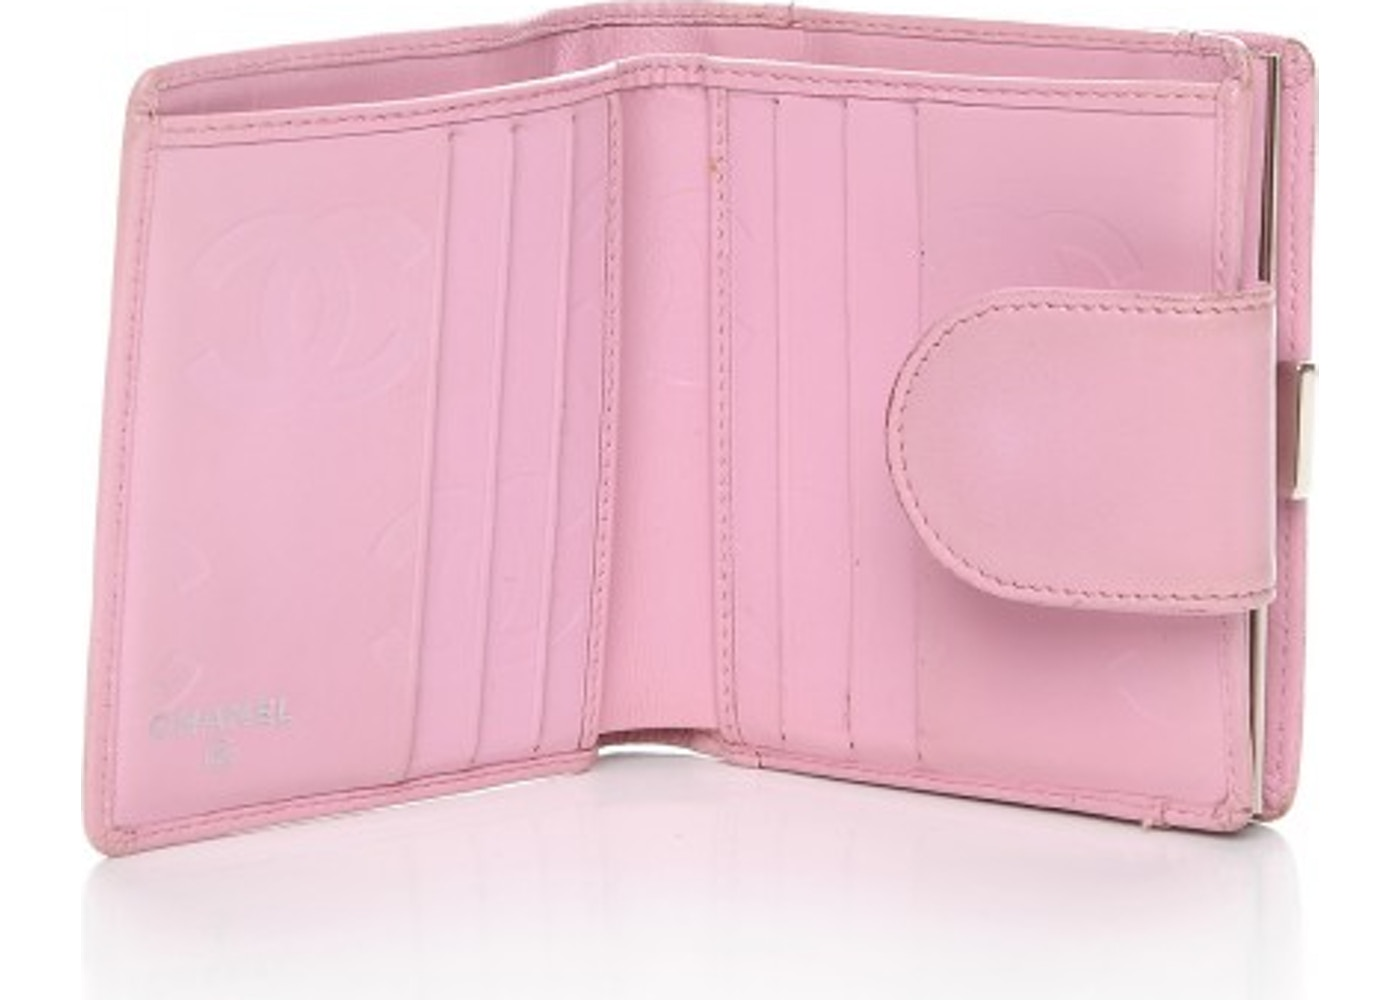 775e4489ab59fb Chanel Cambon Bi-Fold Wallet Diamond Quilted Pink